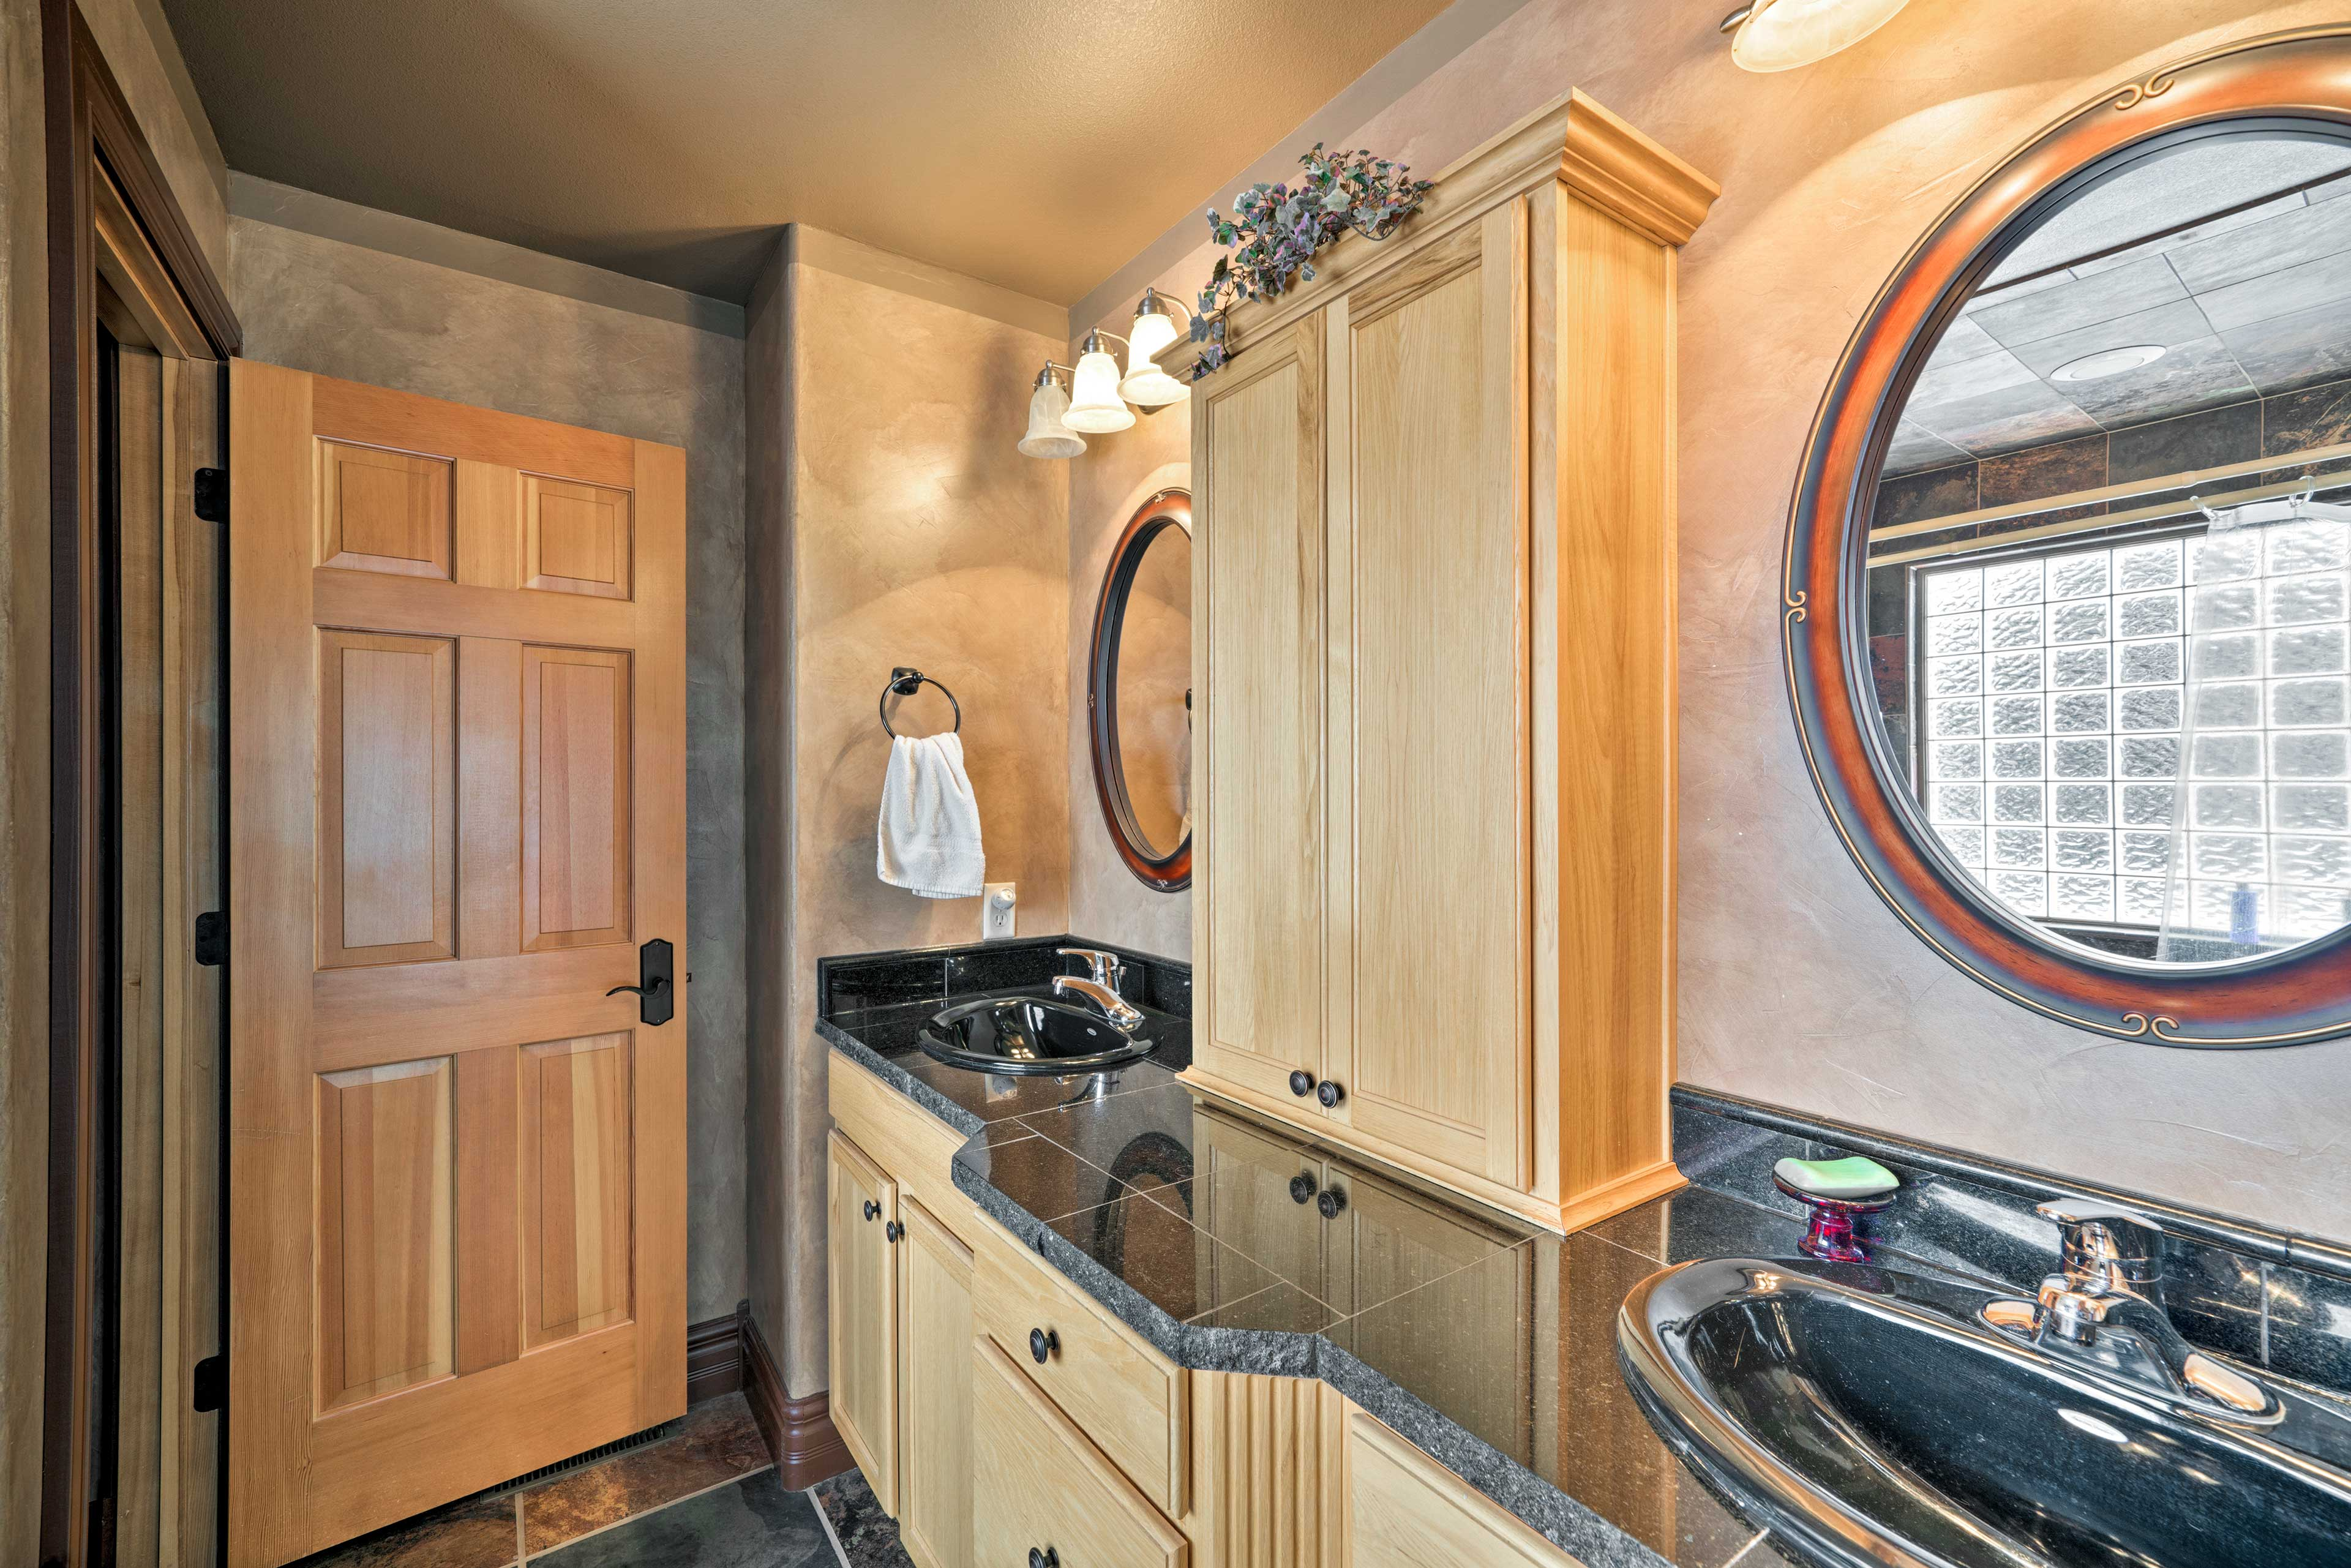 The dual sink vanity makes it easy to get ready in the morning.